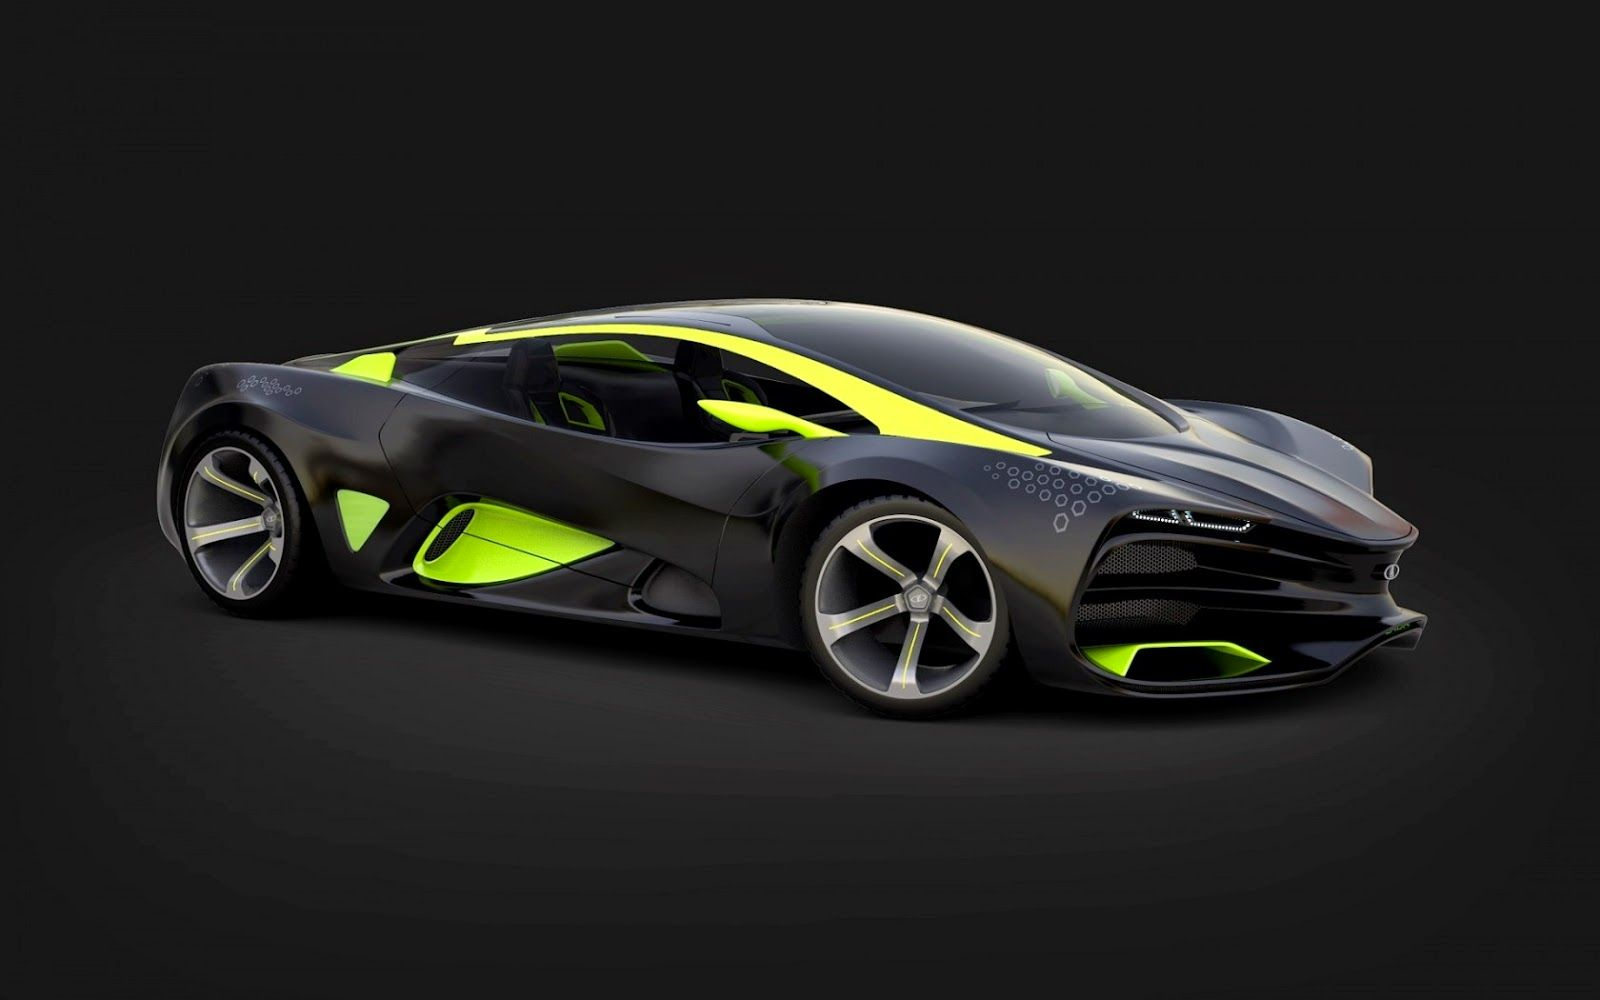 Lada Raven Full Hd Wallpaper Super Car Car Super Cars Supercars Concept